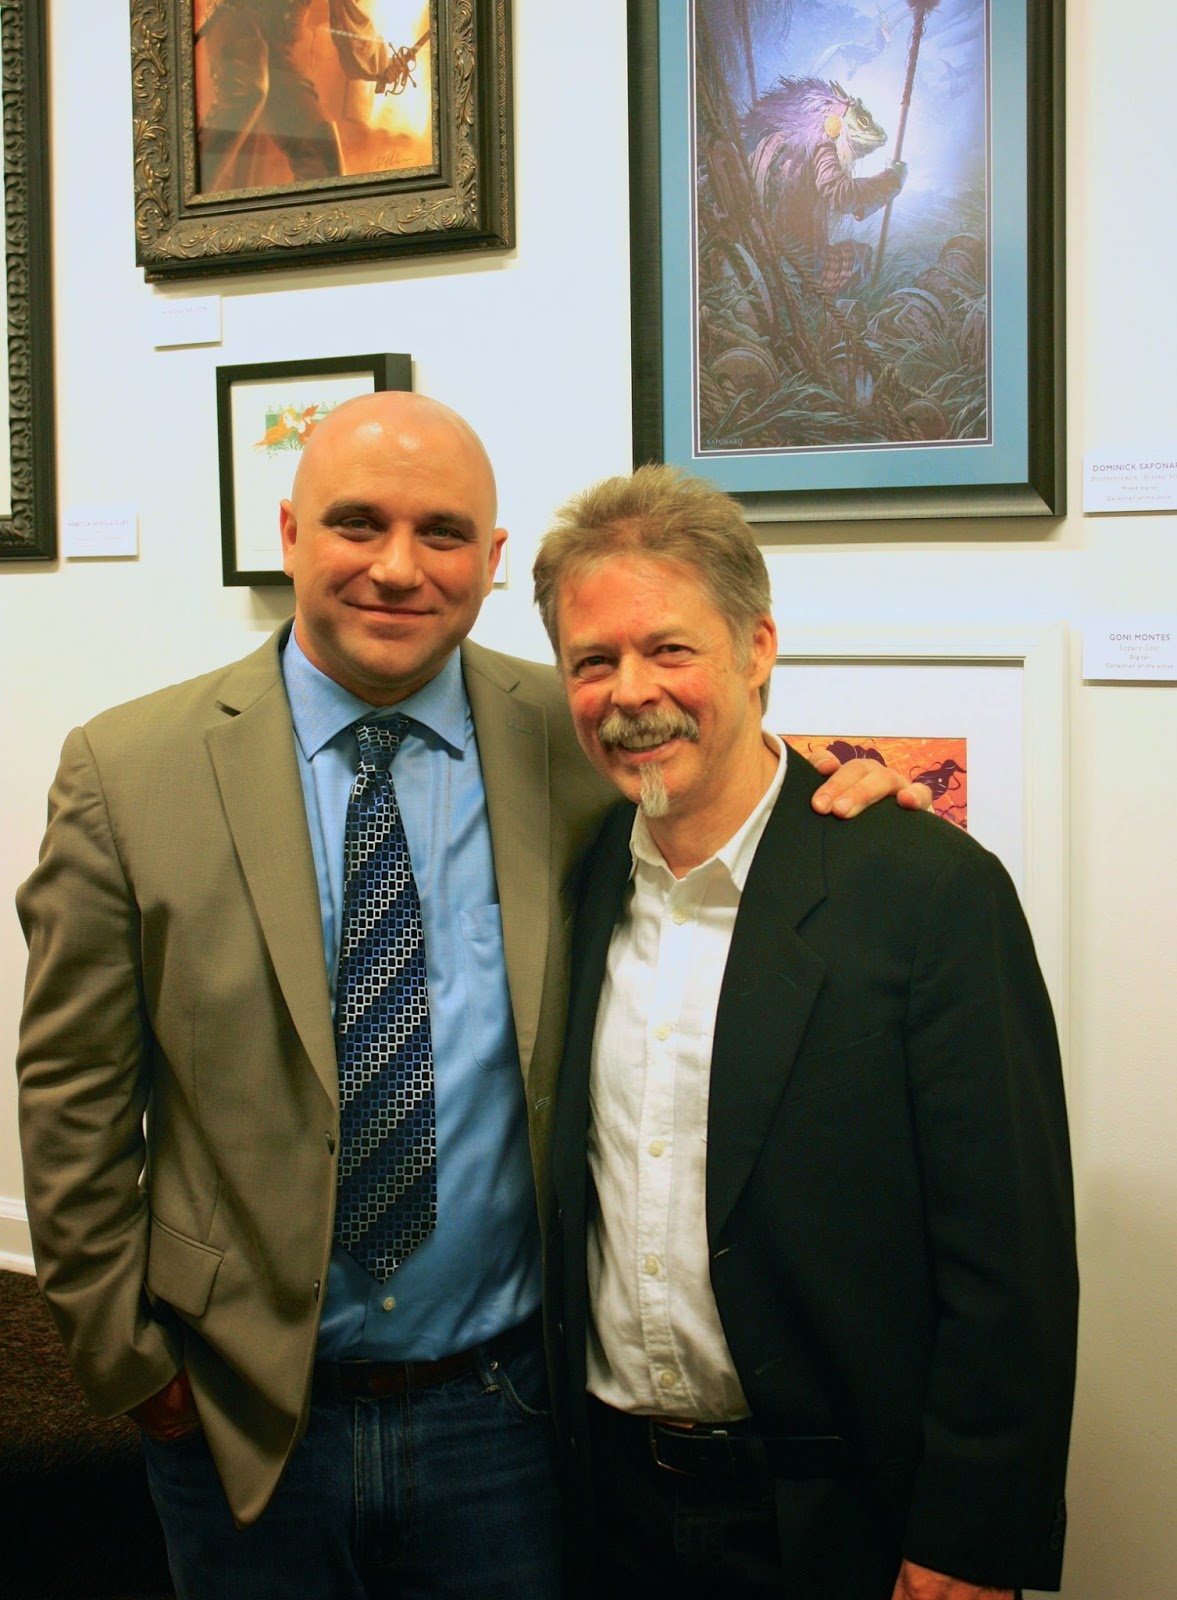 Me and Greg Manchess. The hardest working AND nicest guy in illustration today! Can't thank him enough.